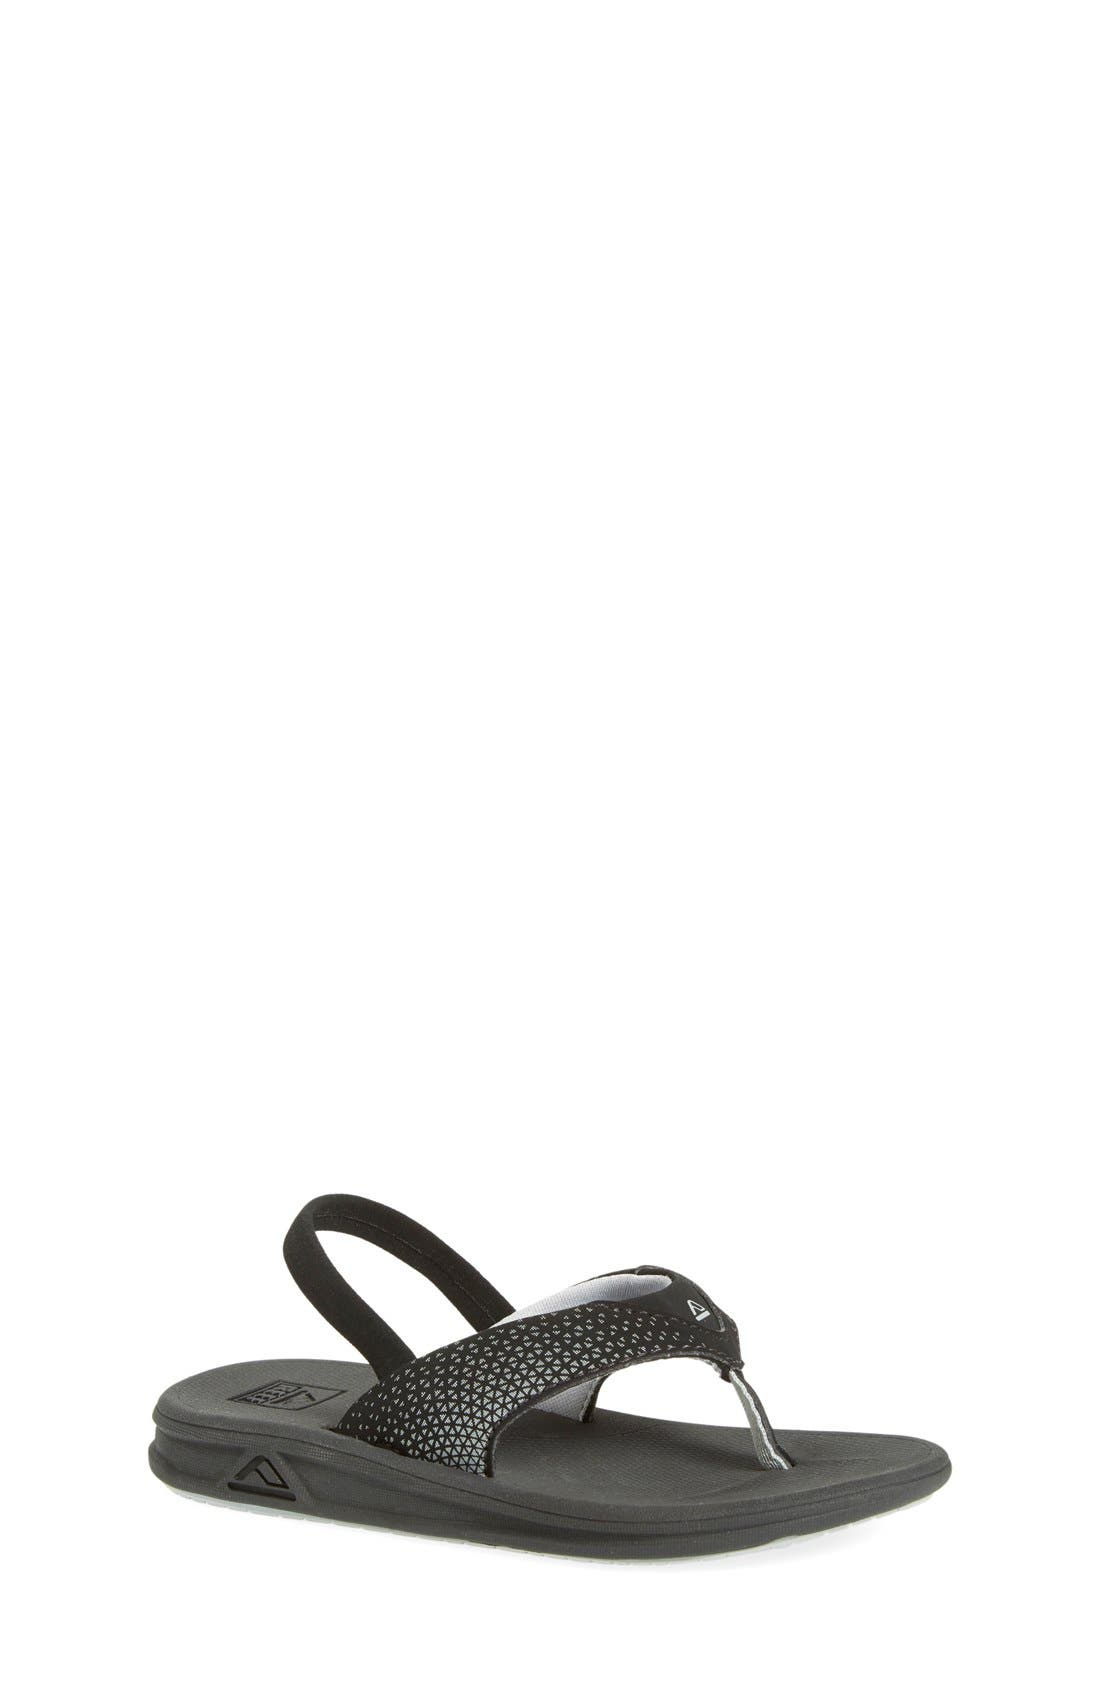 'Grom Rover' Water Friendly Sandal,                         Main,                         color, Black